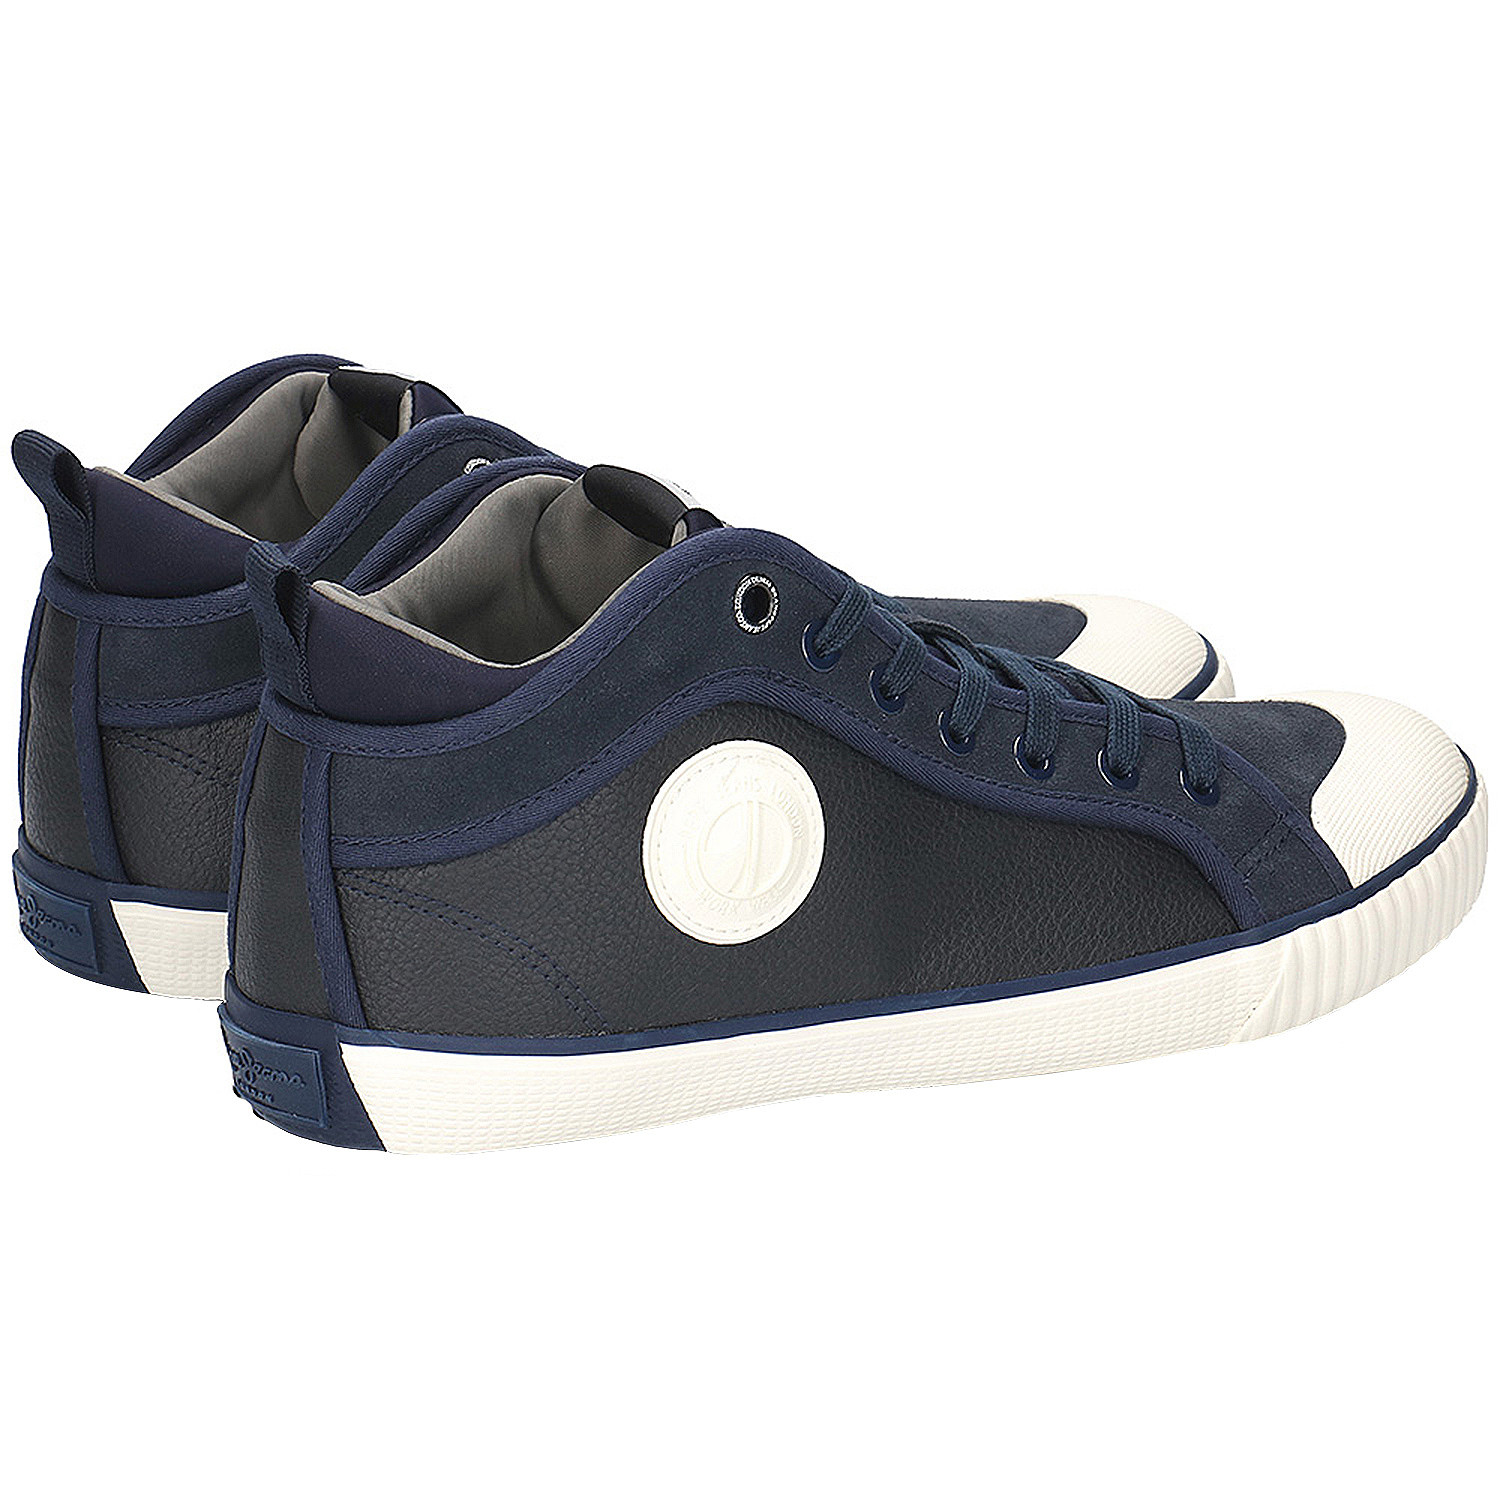 Industry Sock Chaussure Homme Pepe Jeans Bleu Pas Cher Baskets Montantes Homme Pepe Jeans Discount